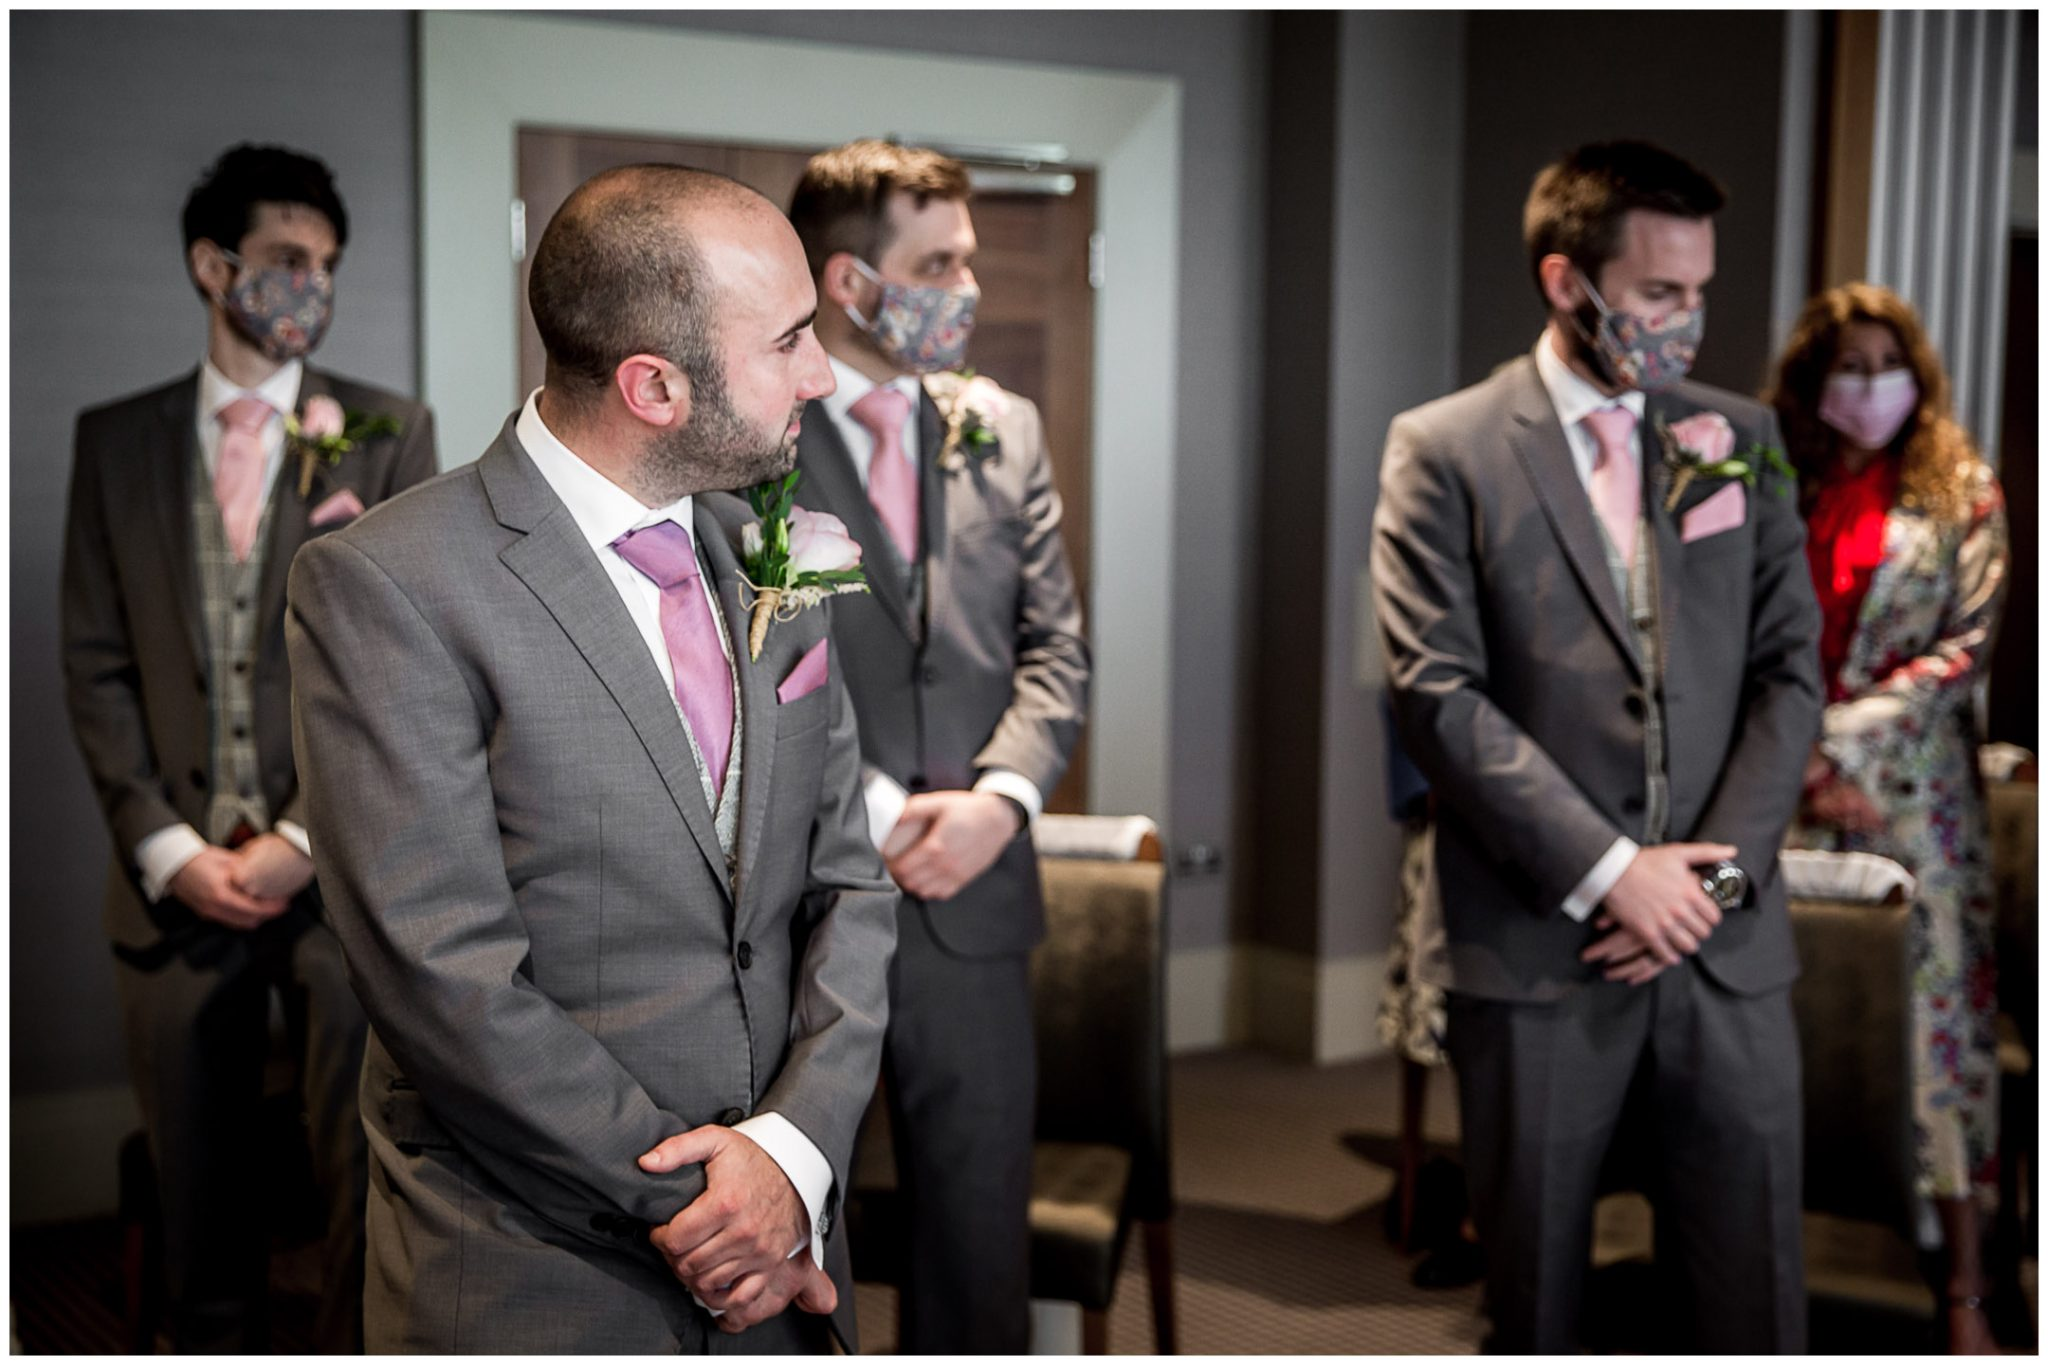 The groom turns and looks as the bride walks down the aisle